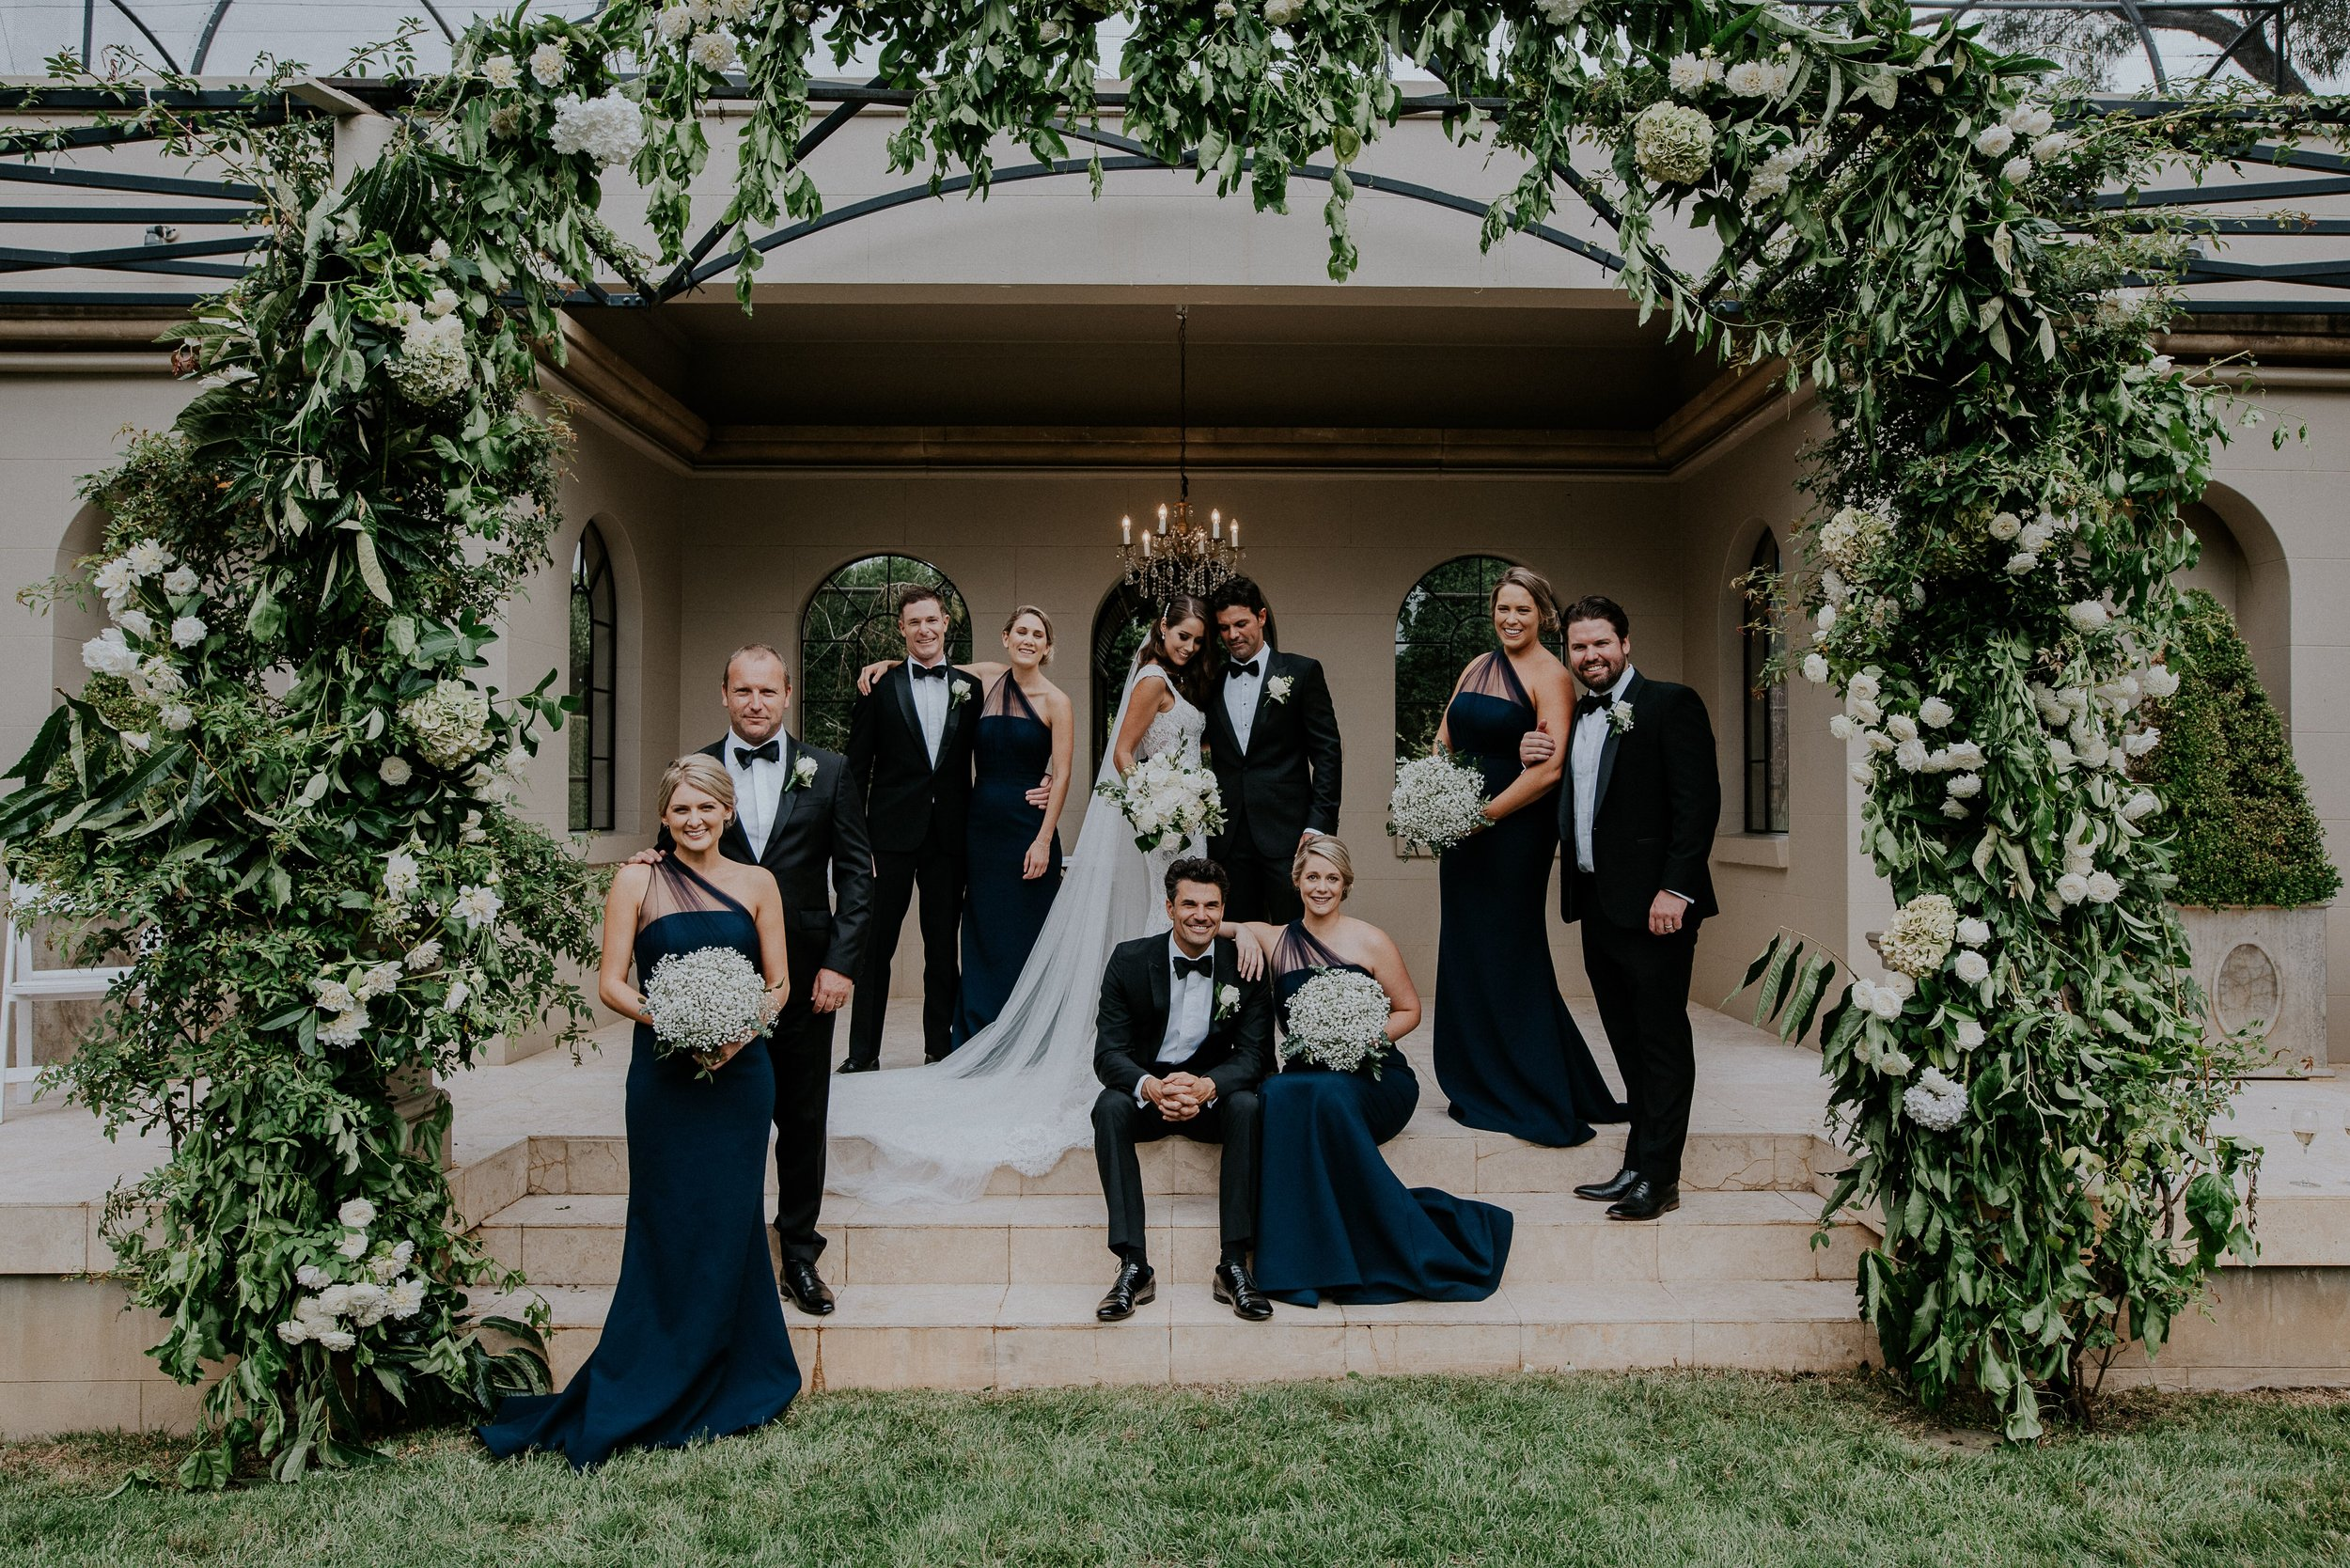 Sheree & Dave @Hopewood House - Lina and the Chanele Rose Flowers team are professional and organised. They went above and beyond to create a dream setting for my wedding at Hopewood House in Bowral. Highly recommend. Thank you Lina!